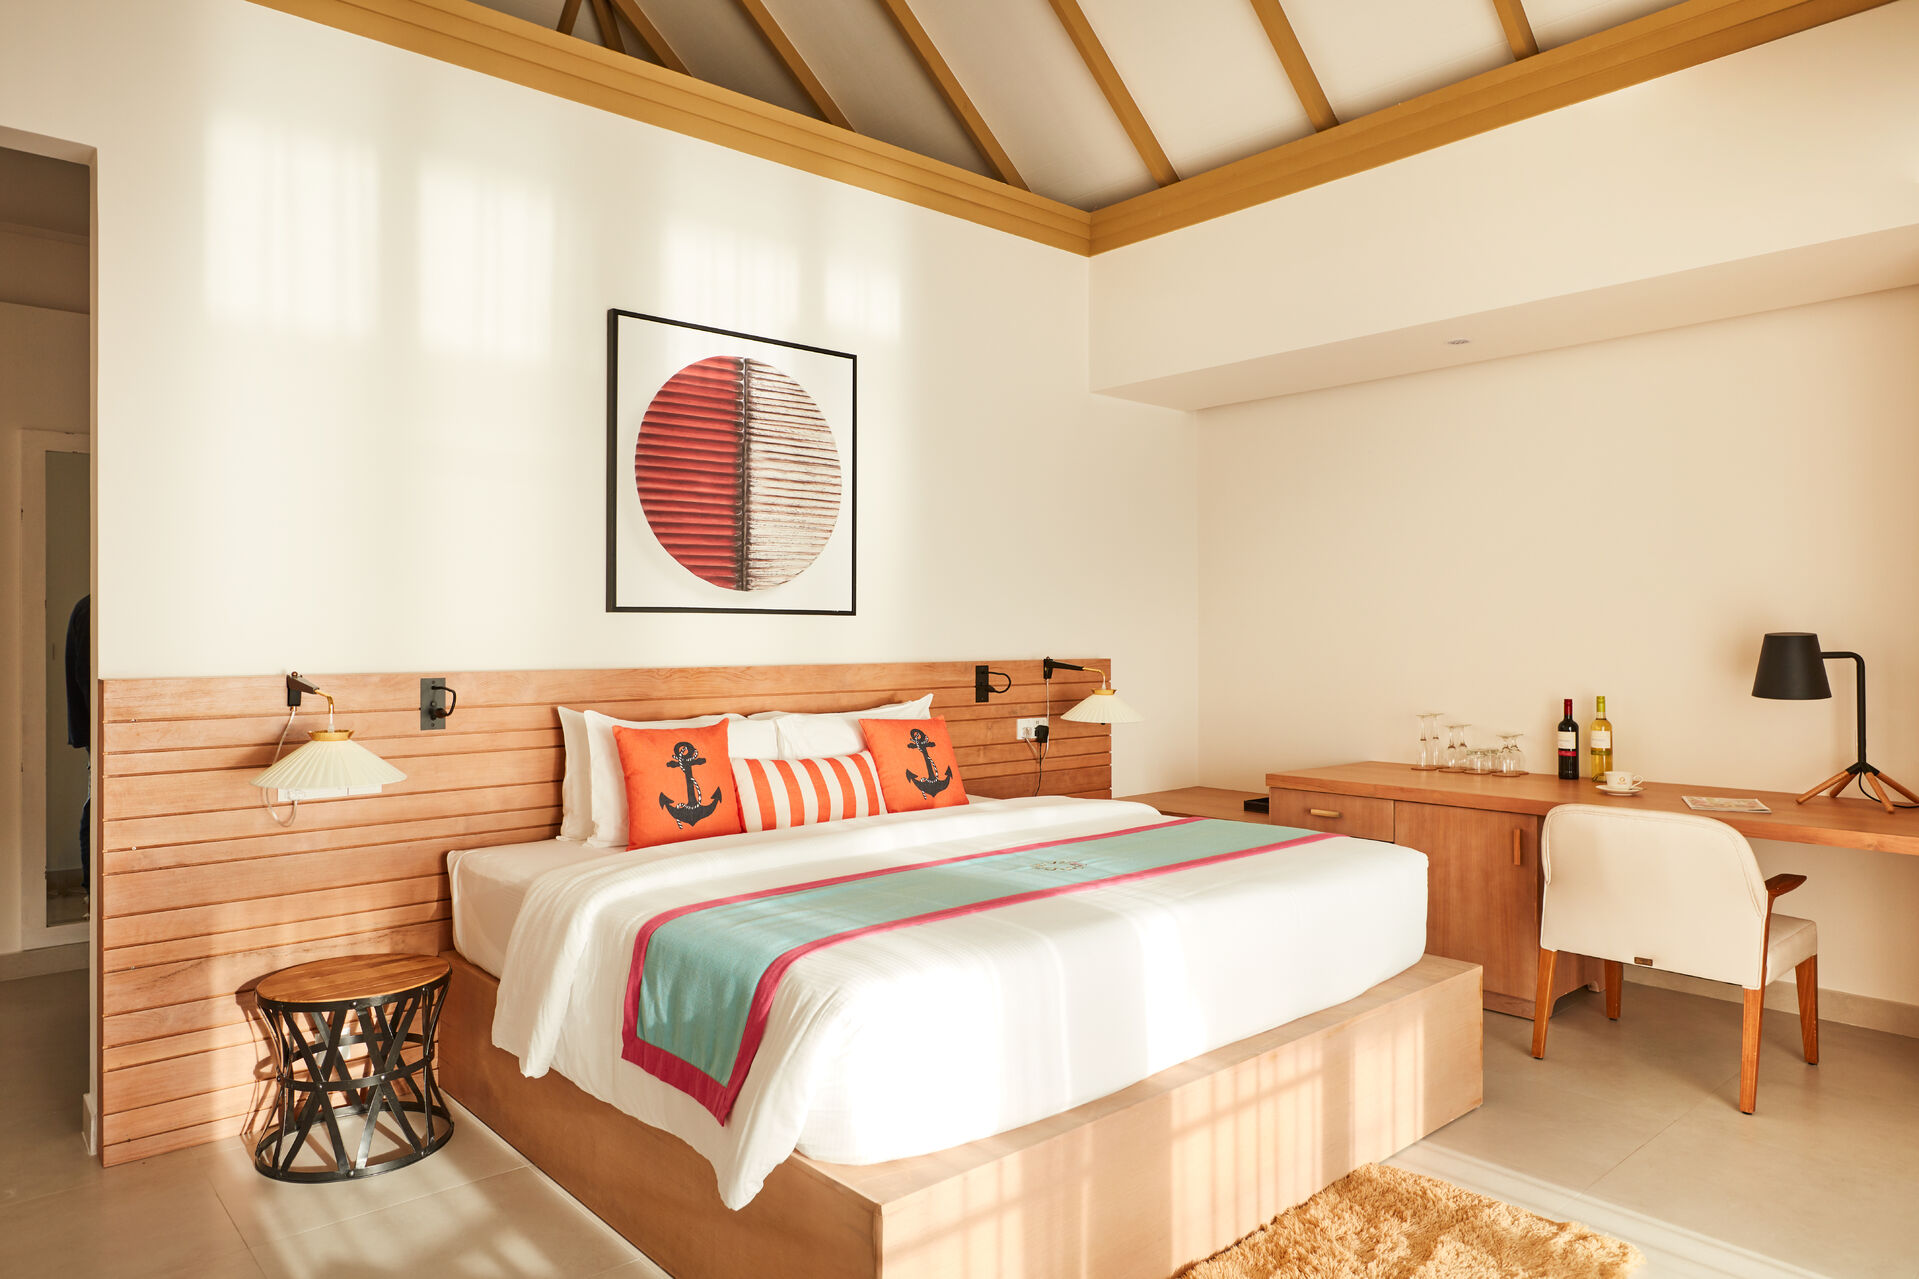 https://cms.satur.sk/data/imgs/tour_image/orig/iruveli_beach_suite_with_pool_0083-1939698.jpg